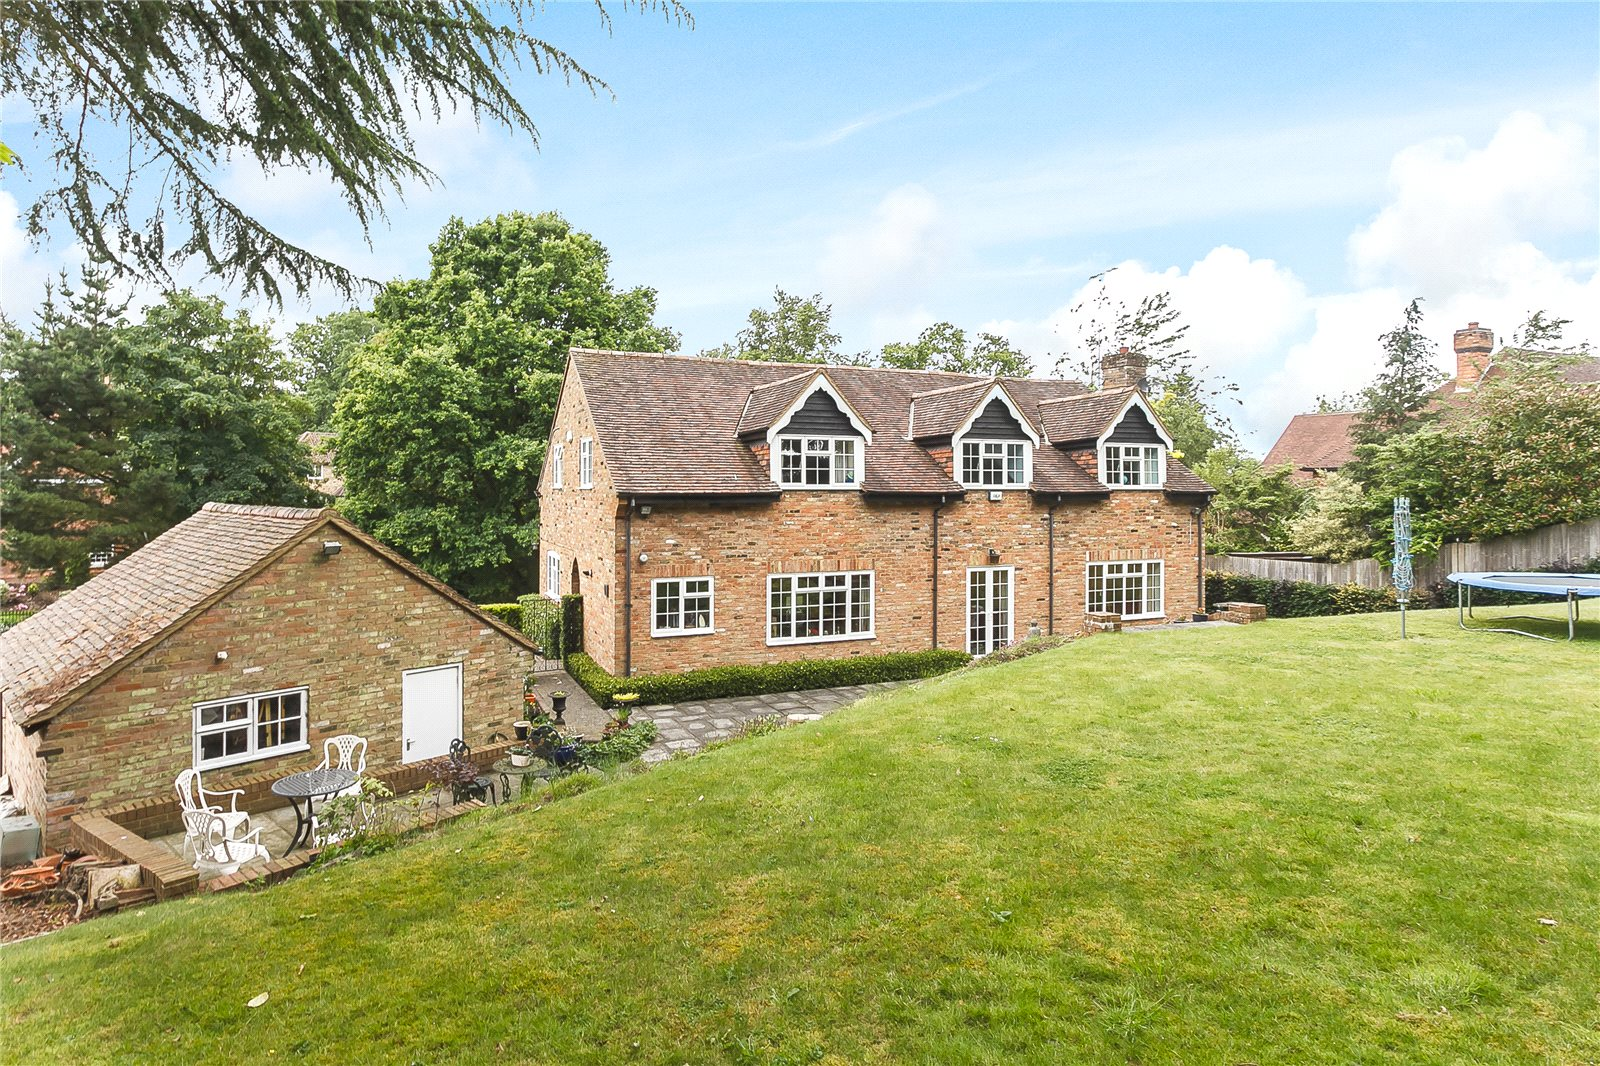 Single Family Home for Sale at Camp Road, Gerrards Cross, Buckinghamshire, SL9 Gerrards Cross, England